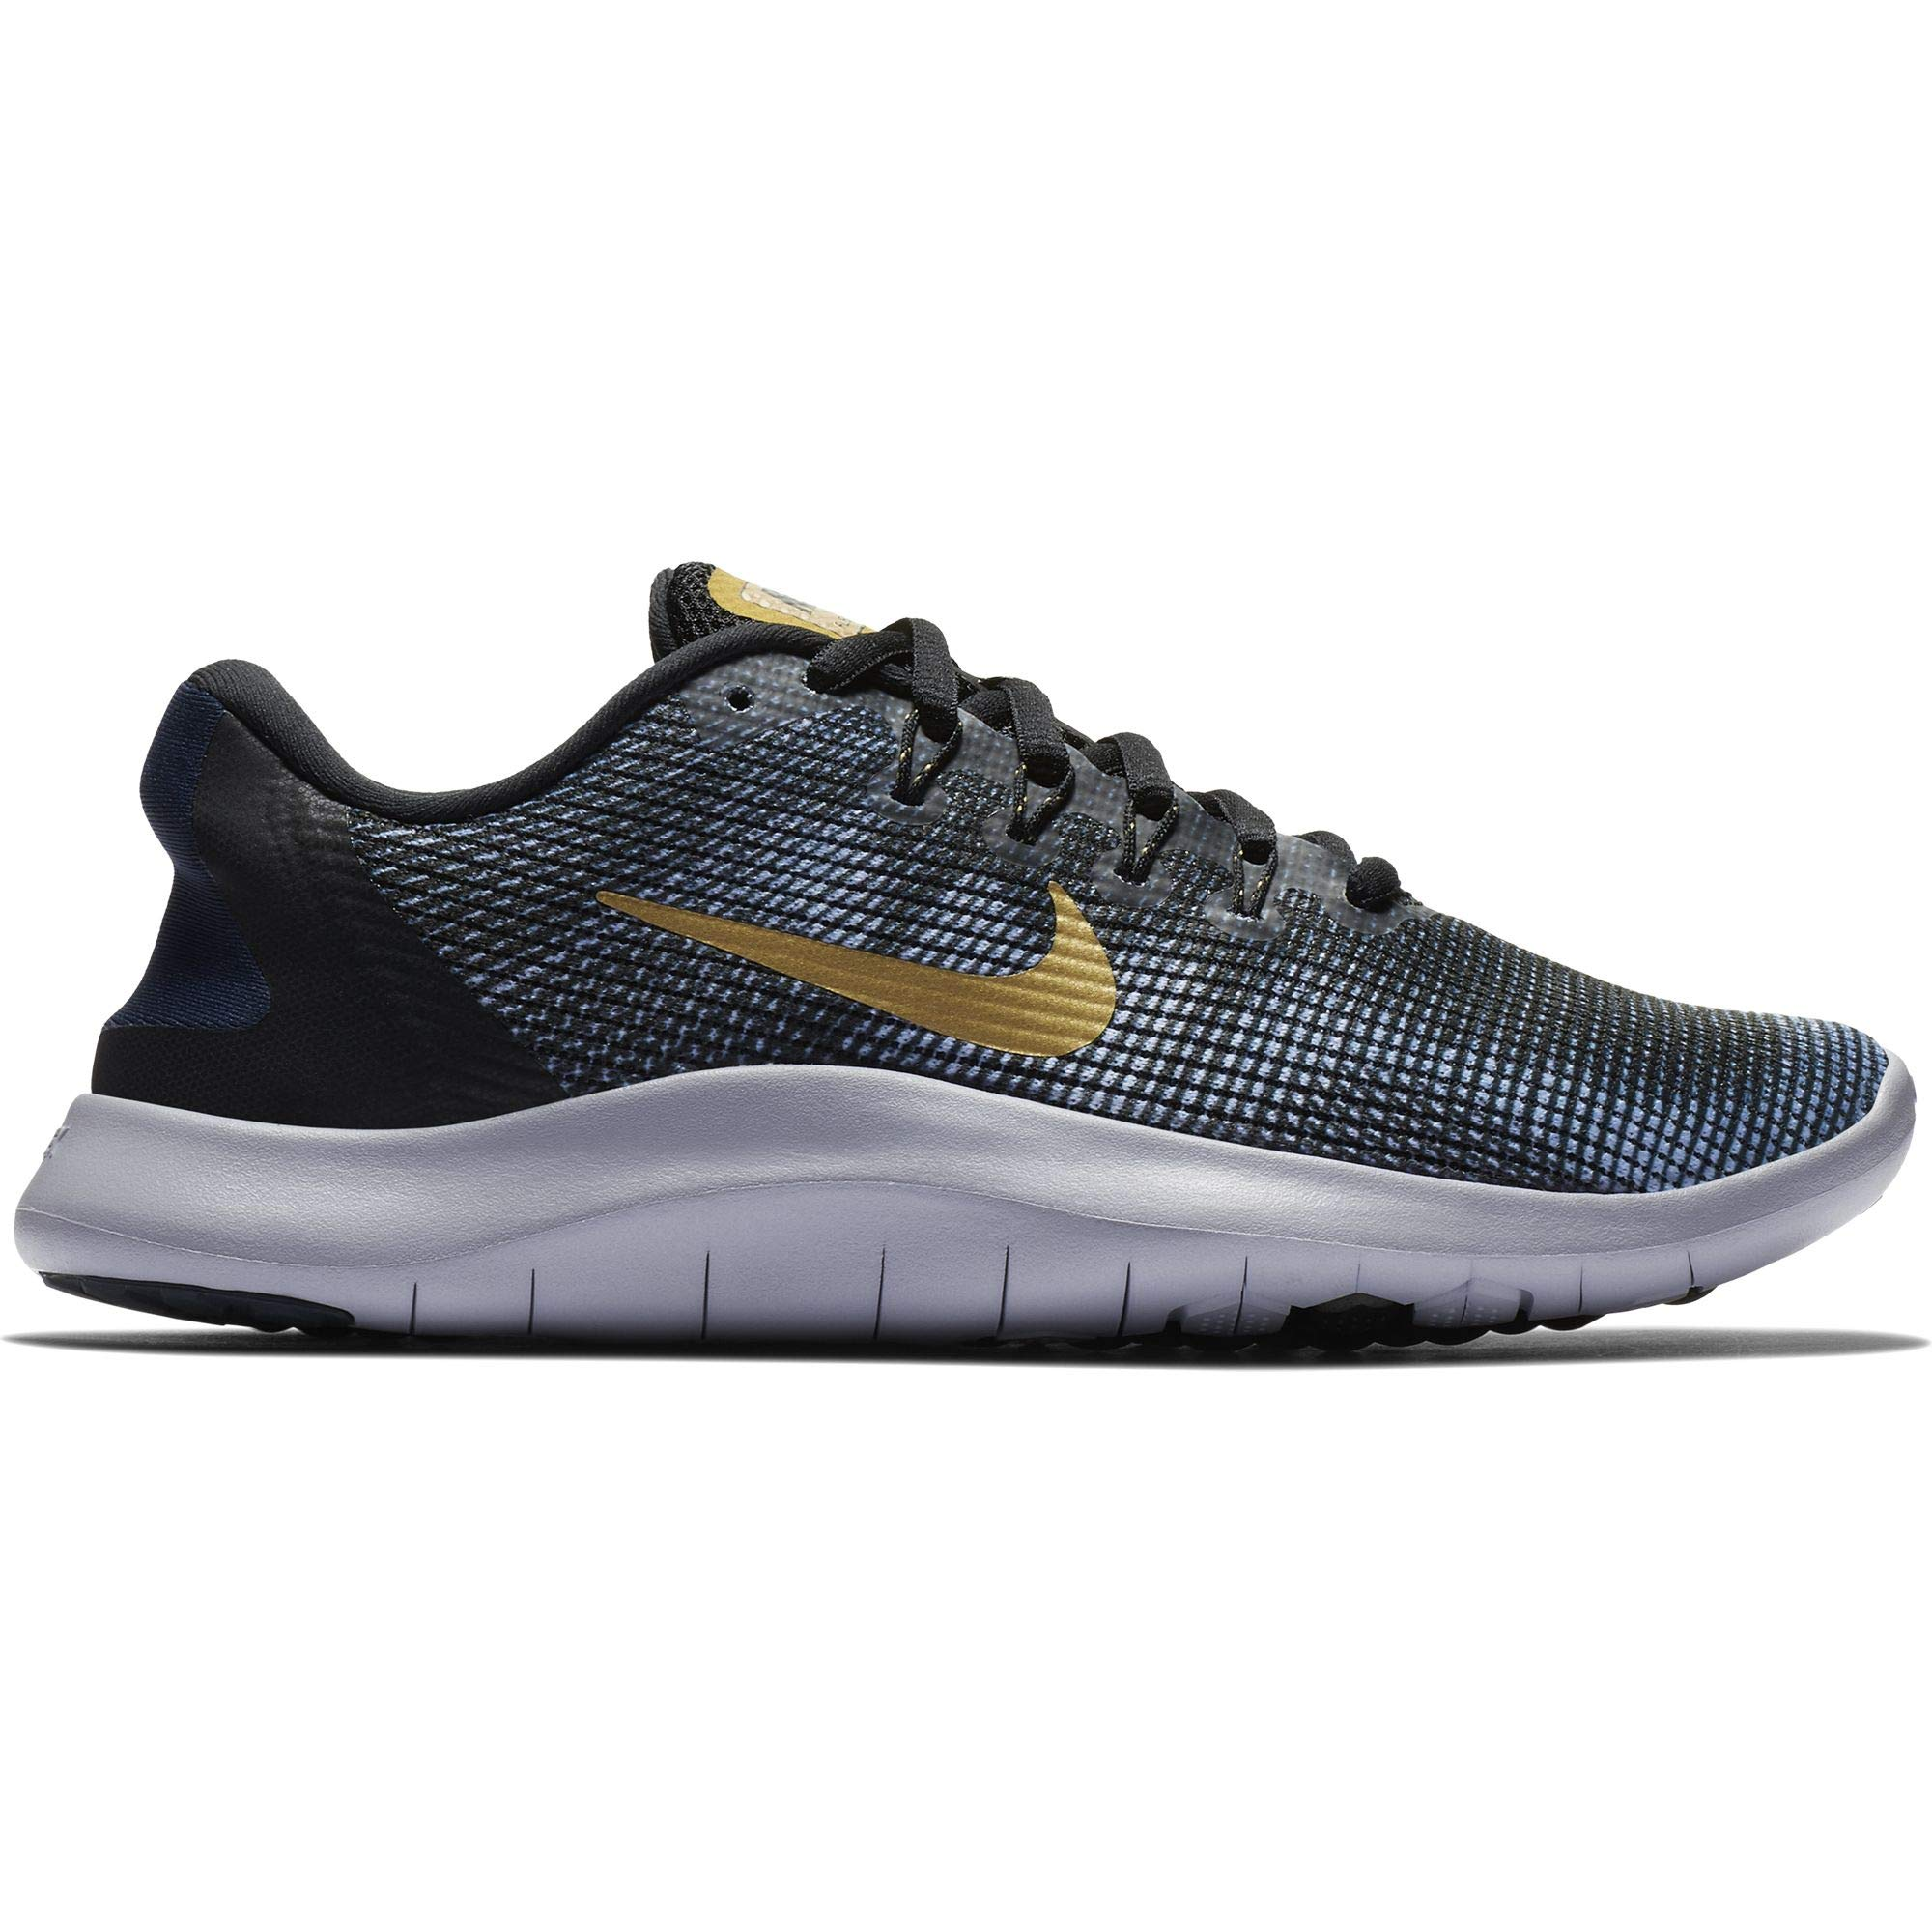 aea35c3f0588 Galleon - NIKE Women s Flex RN 2018 Running Shoe Black Metallic Gold Obsidian  Size 8 M US